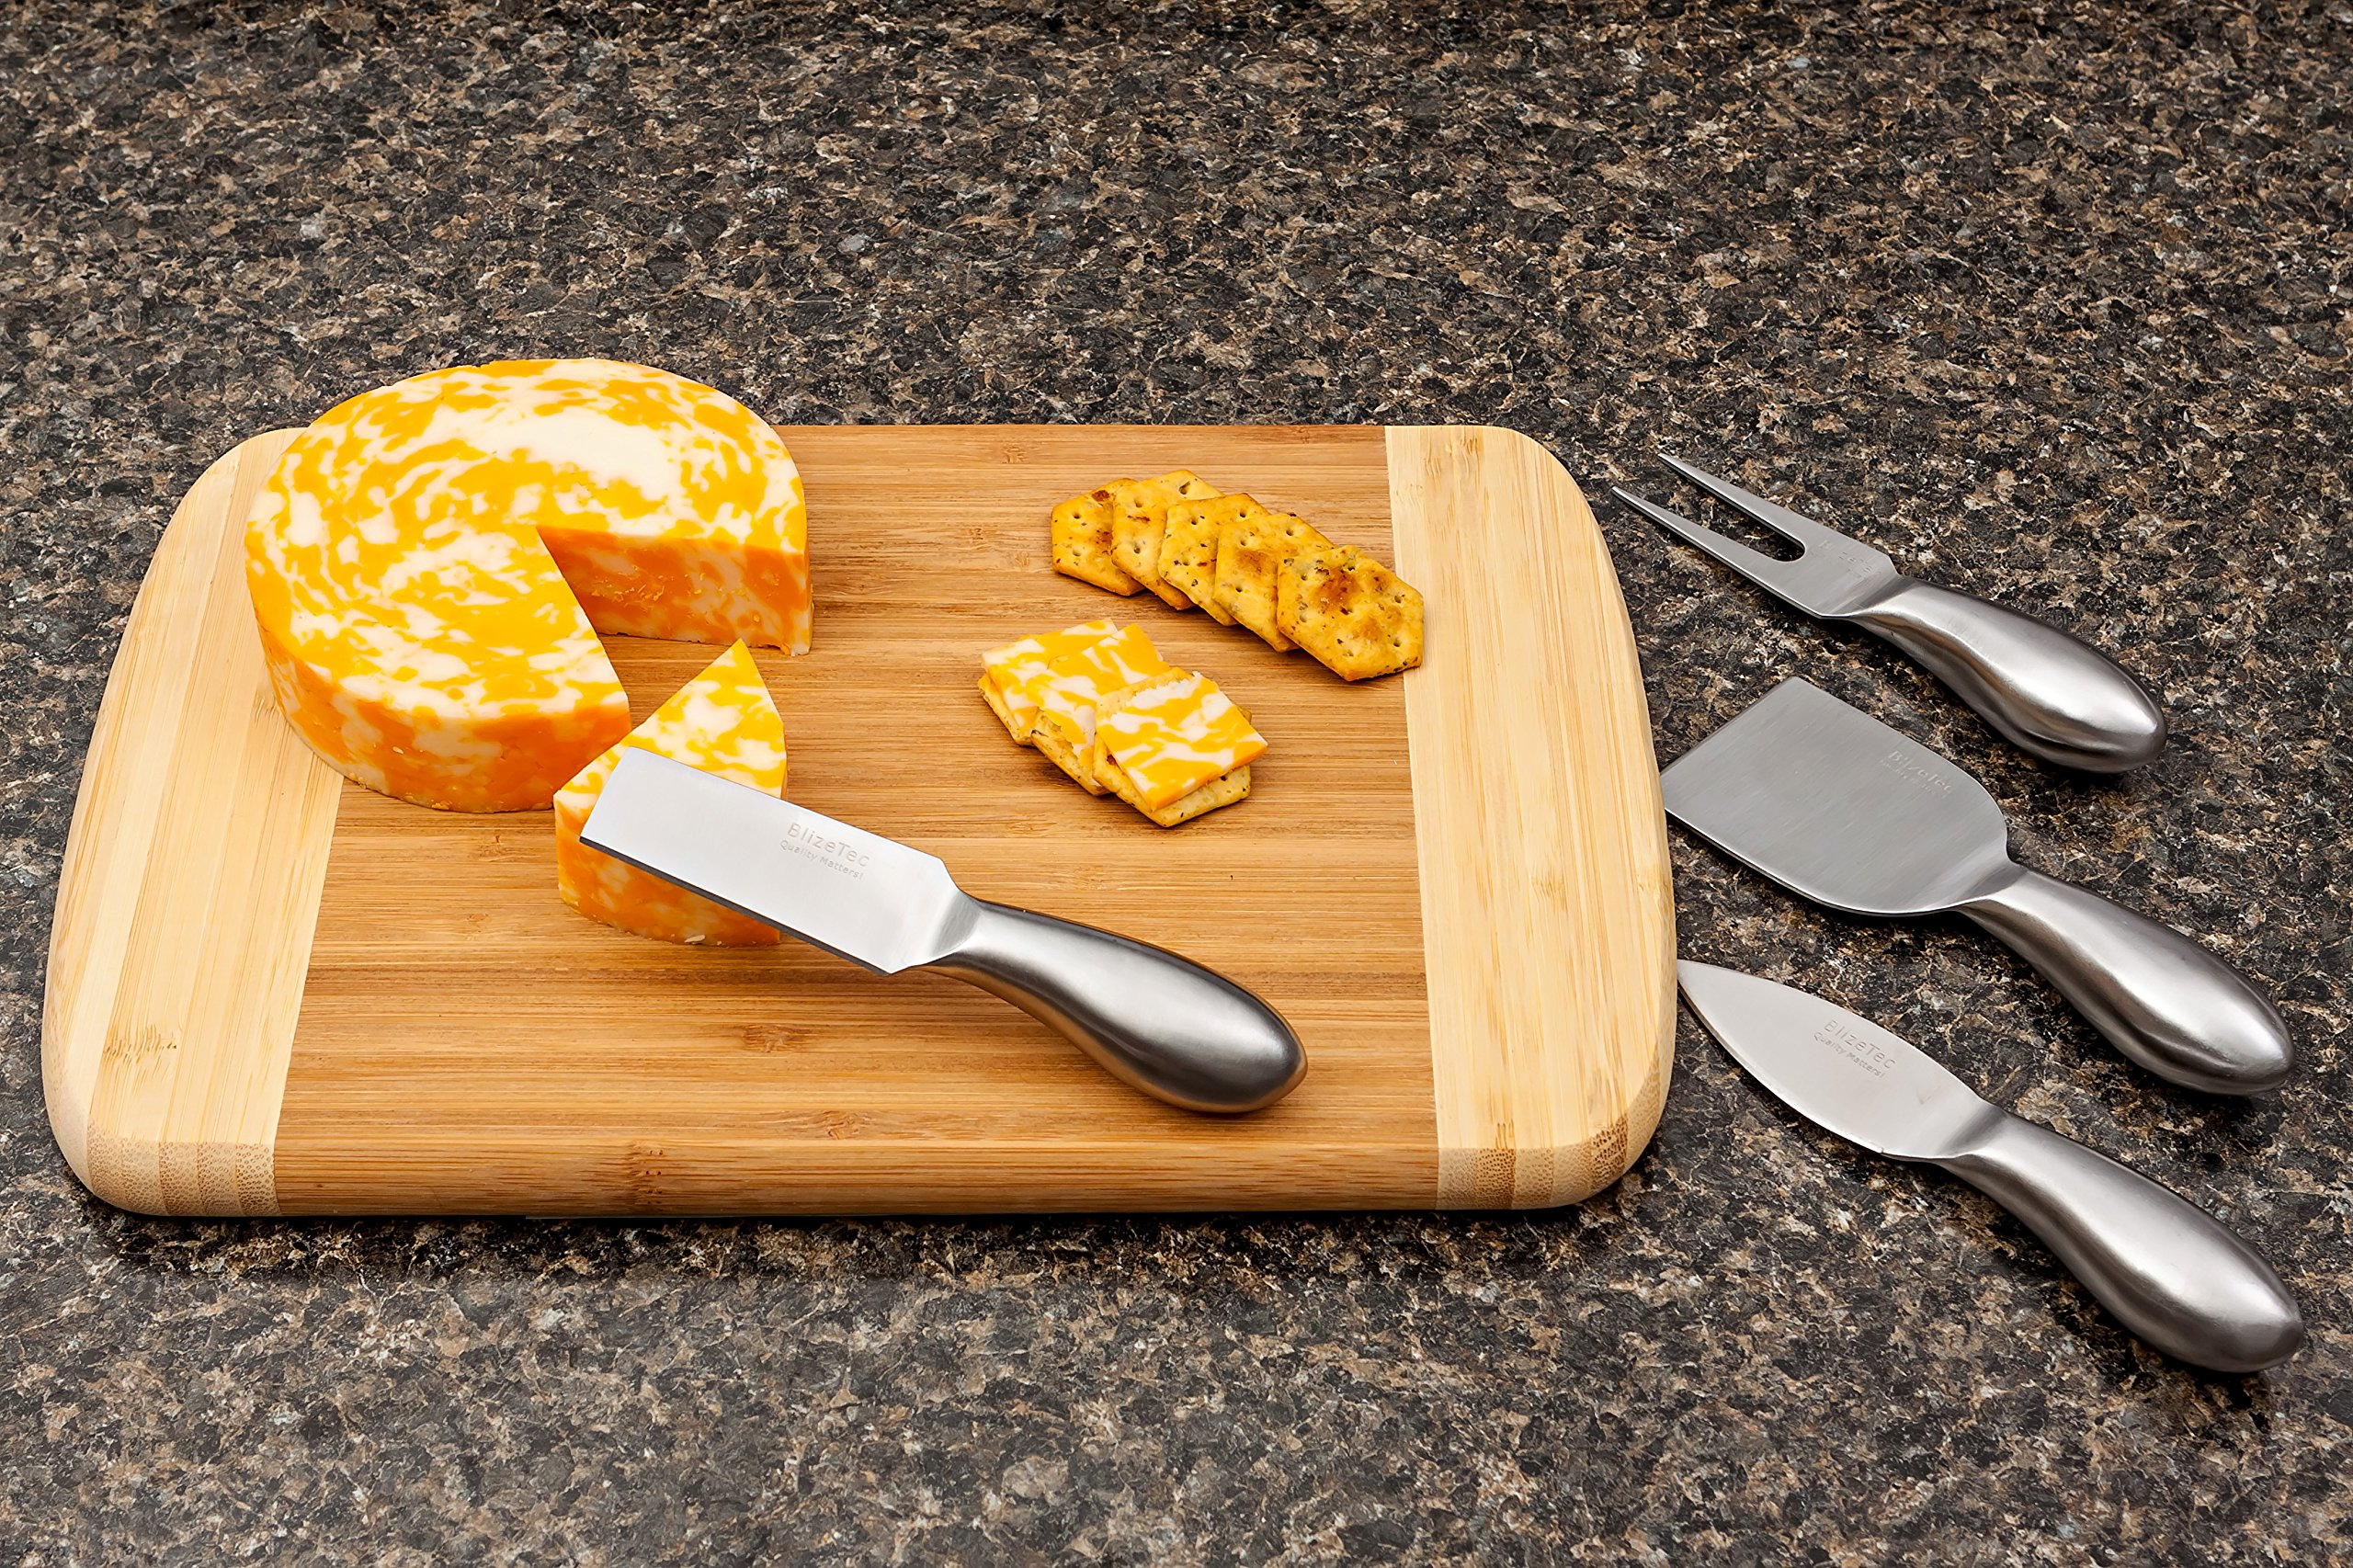 Cheese Knives: BlizeTec Cheese Slicer & Cutter Set (4 pcs) by BlizeTec (Image #5)